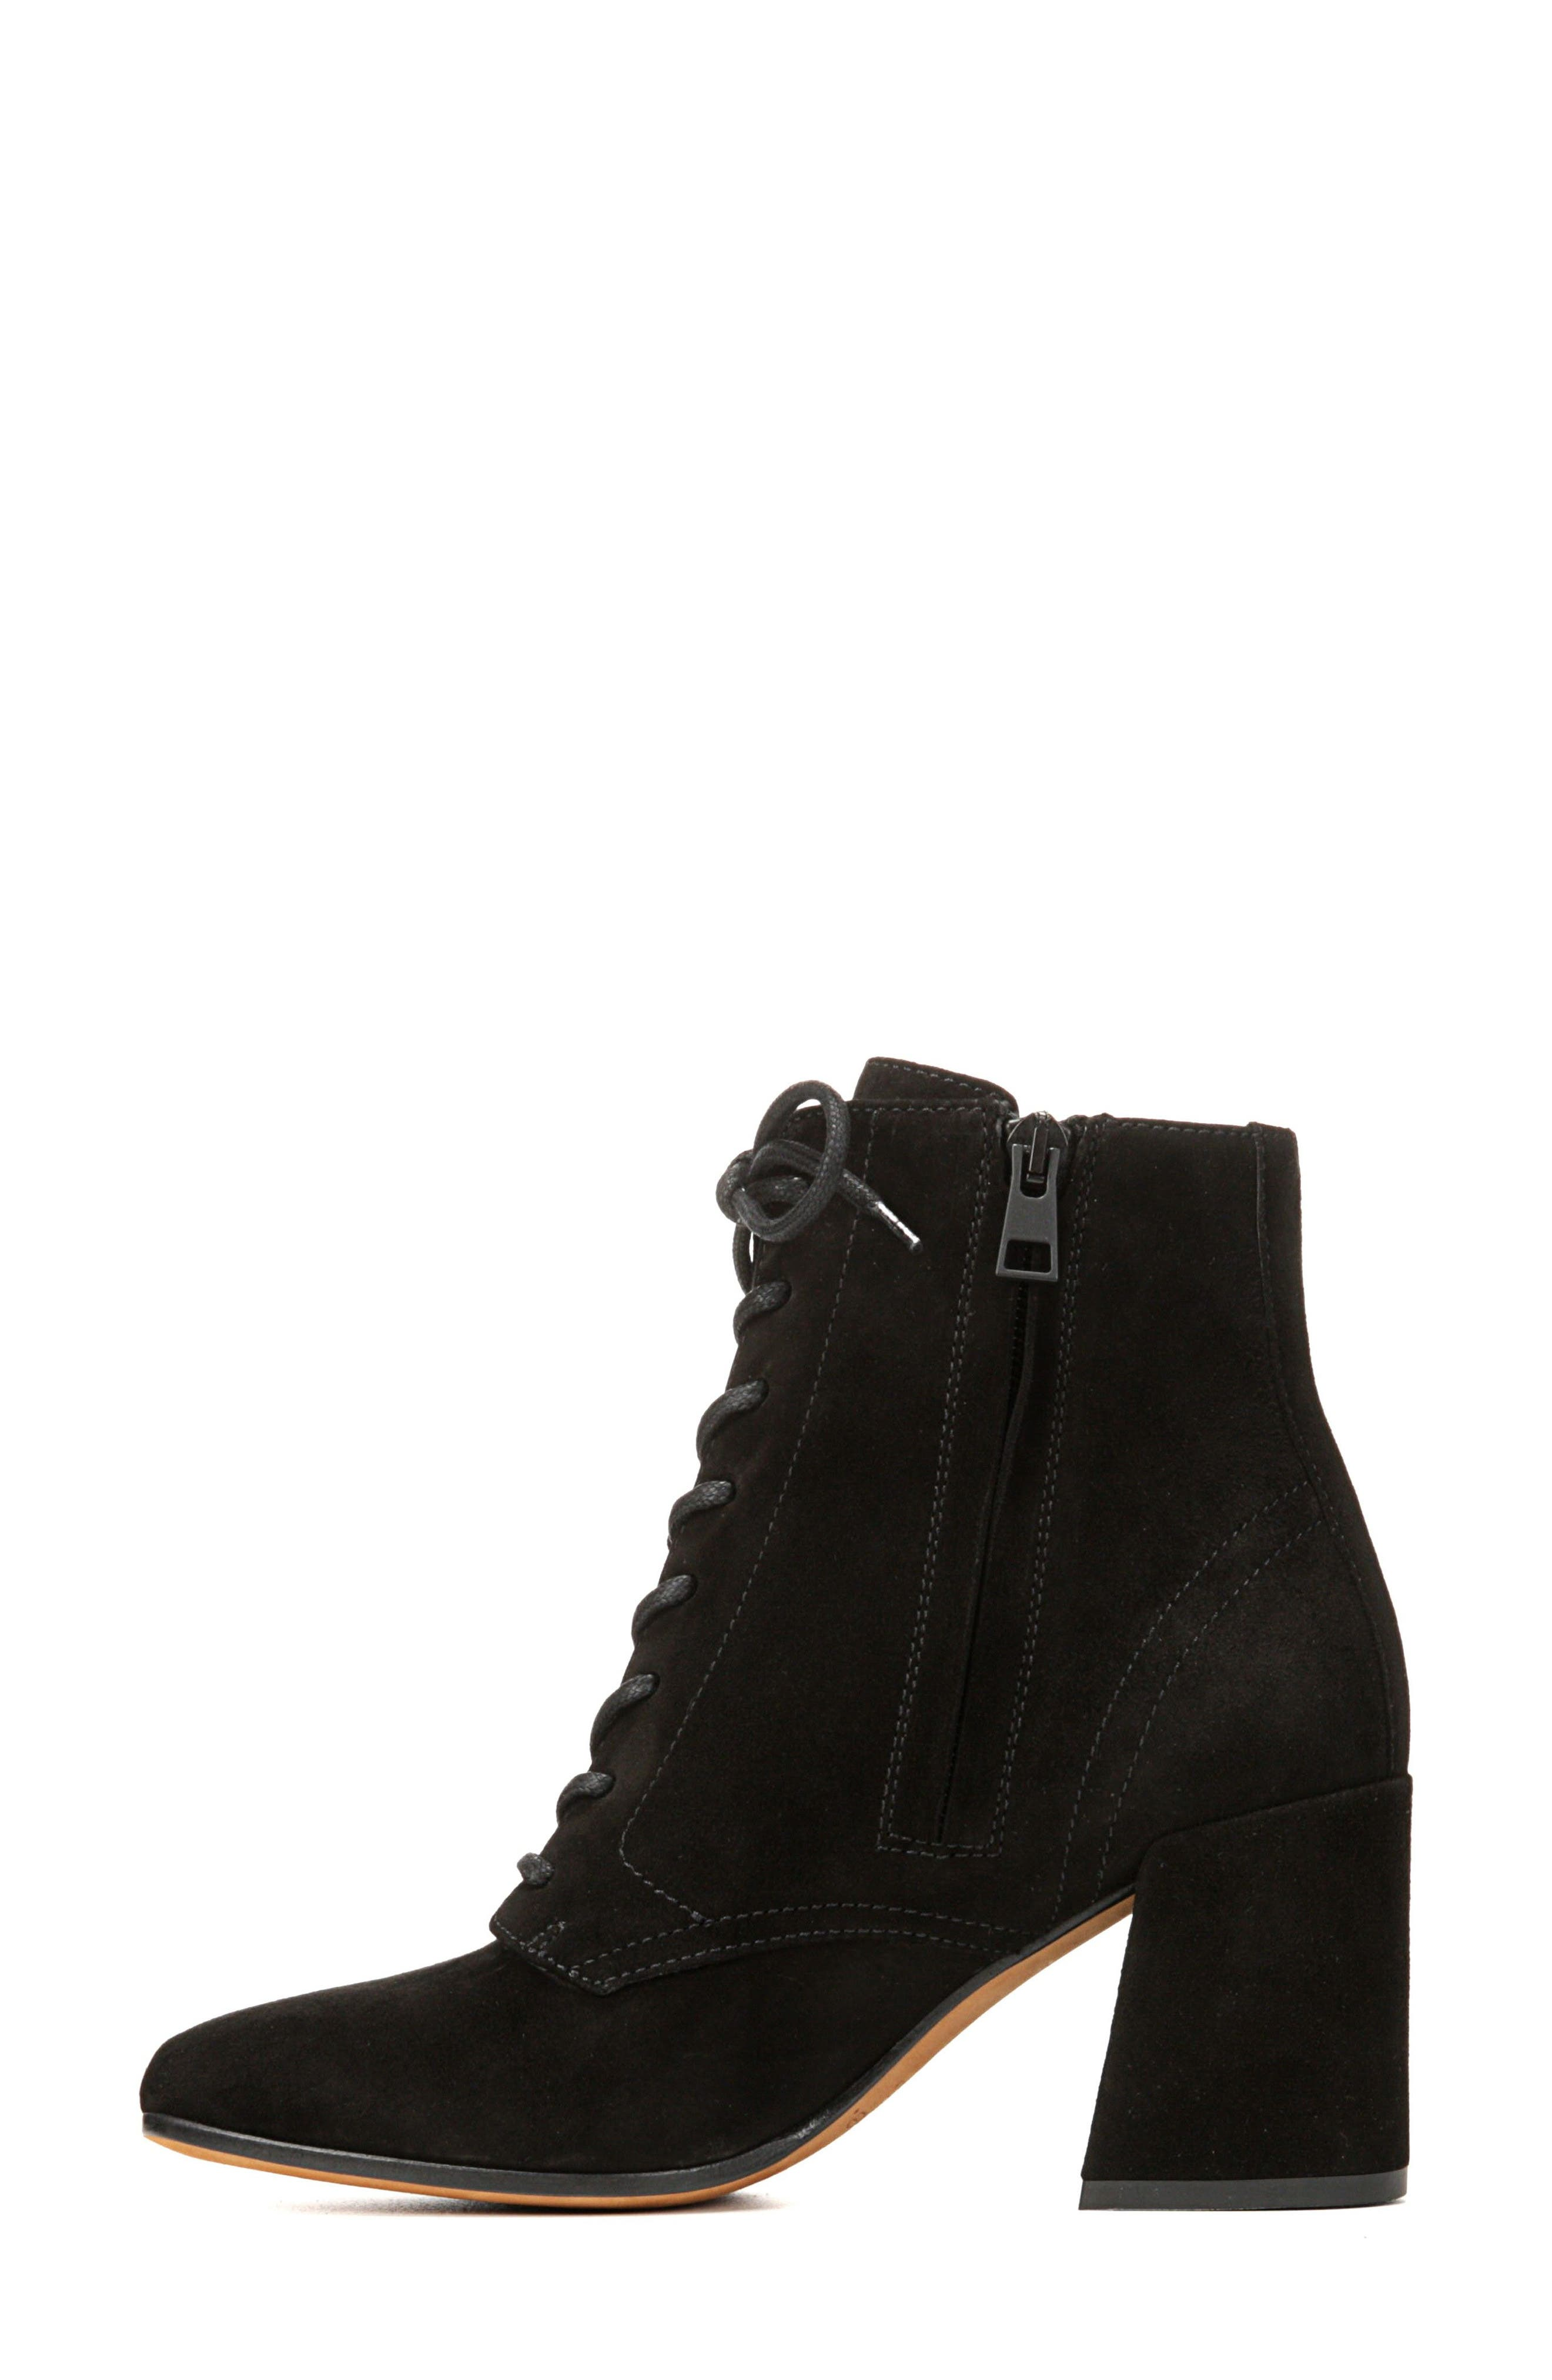 Halle Flare Heel Bootie,                             Alternate thumbnail 3, color,                             001